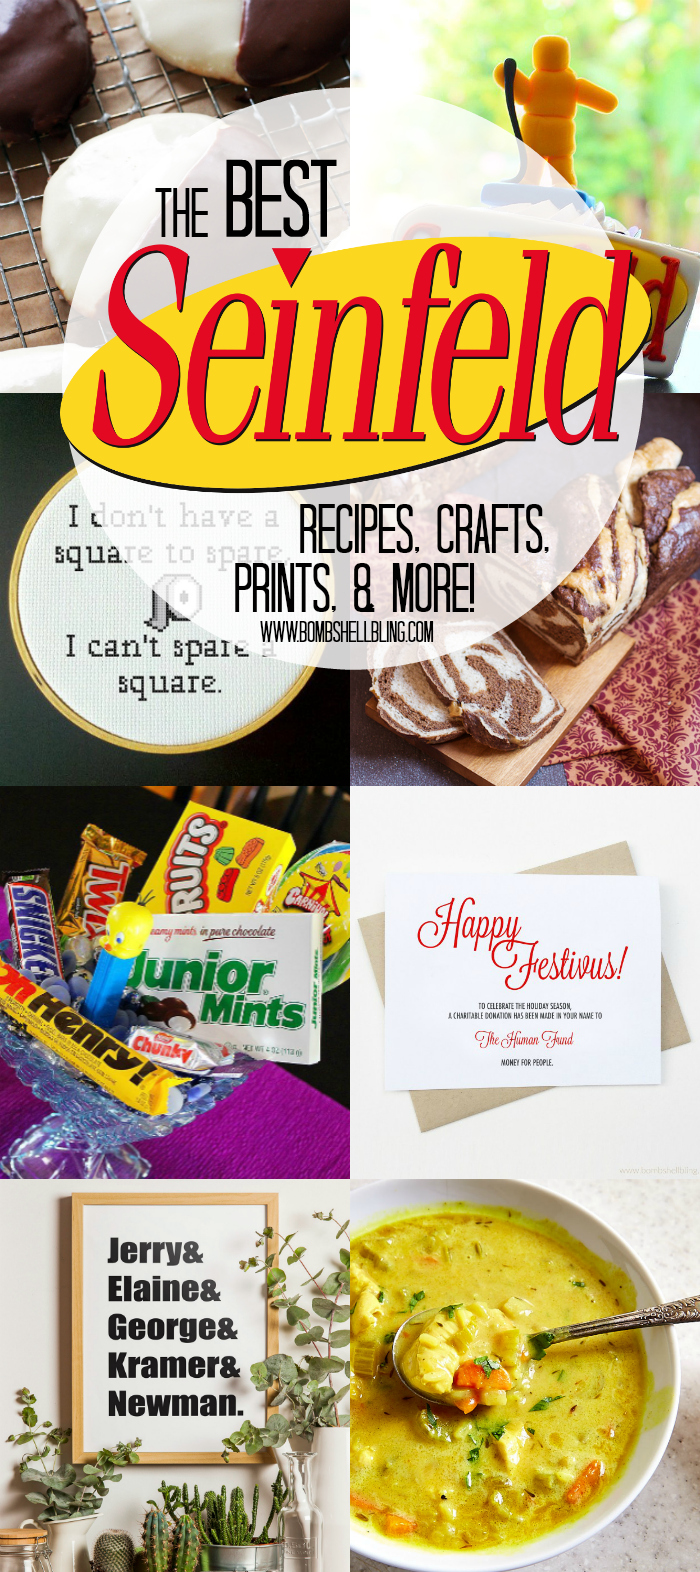 Here is a roundup of the very best Seinfeld recipes, crafts, printables, and more! Sure to make you giggle AND inspire you.